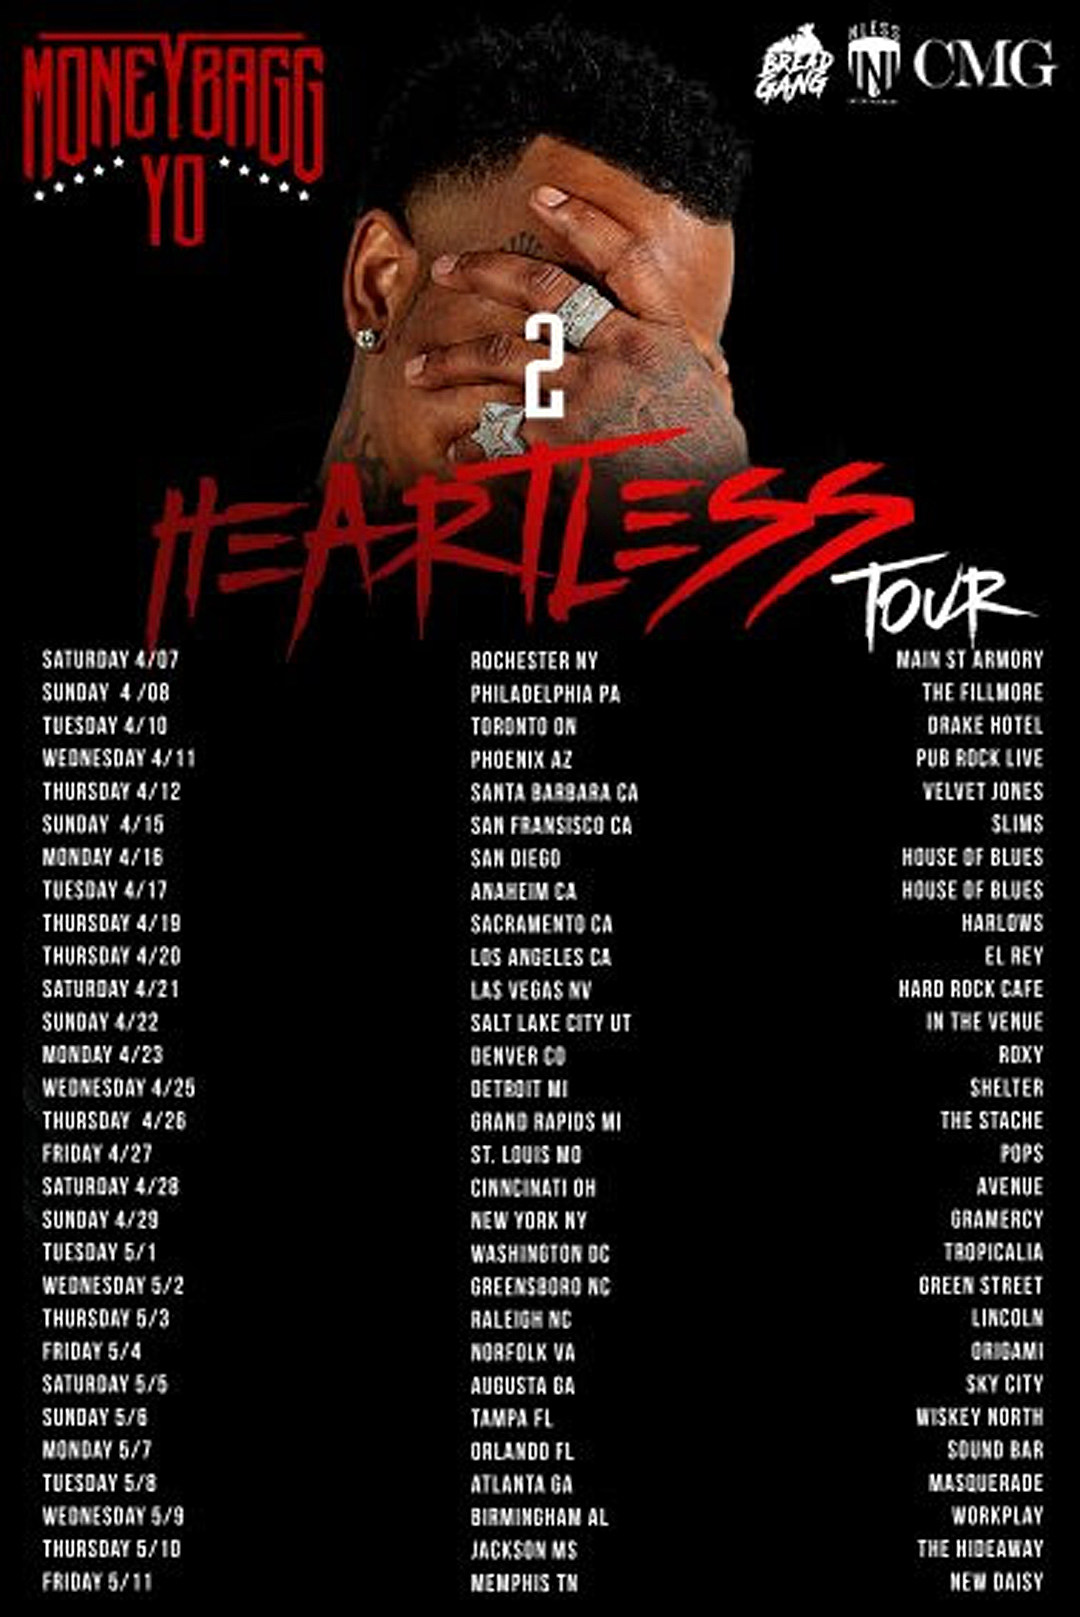 Moneybagg Yo Unveils Dates for 2 Heartless Tour - XXL